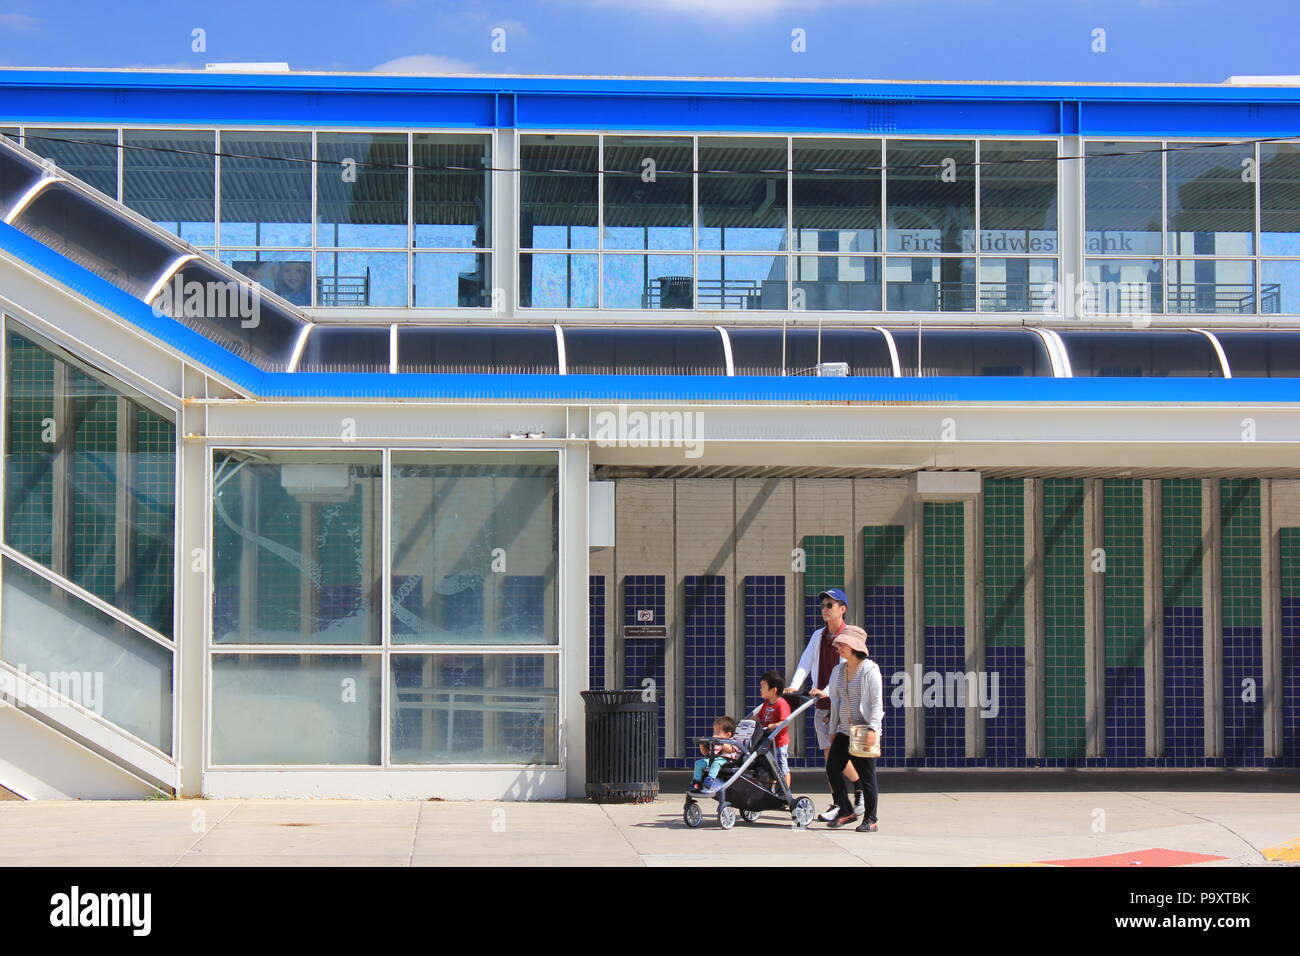 Family pushing a stroller and stopping at the CTA Blue train stop at Cumberland Station in Park Ridge, Illinois on a sunny summer day. - Stock Image